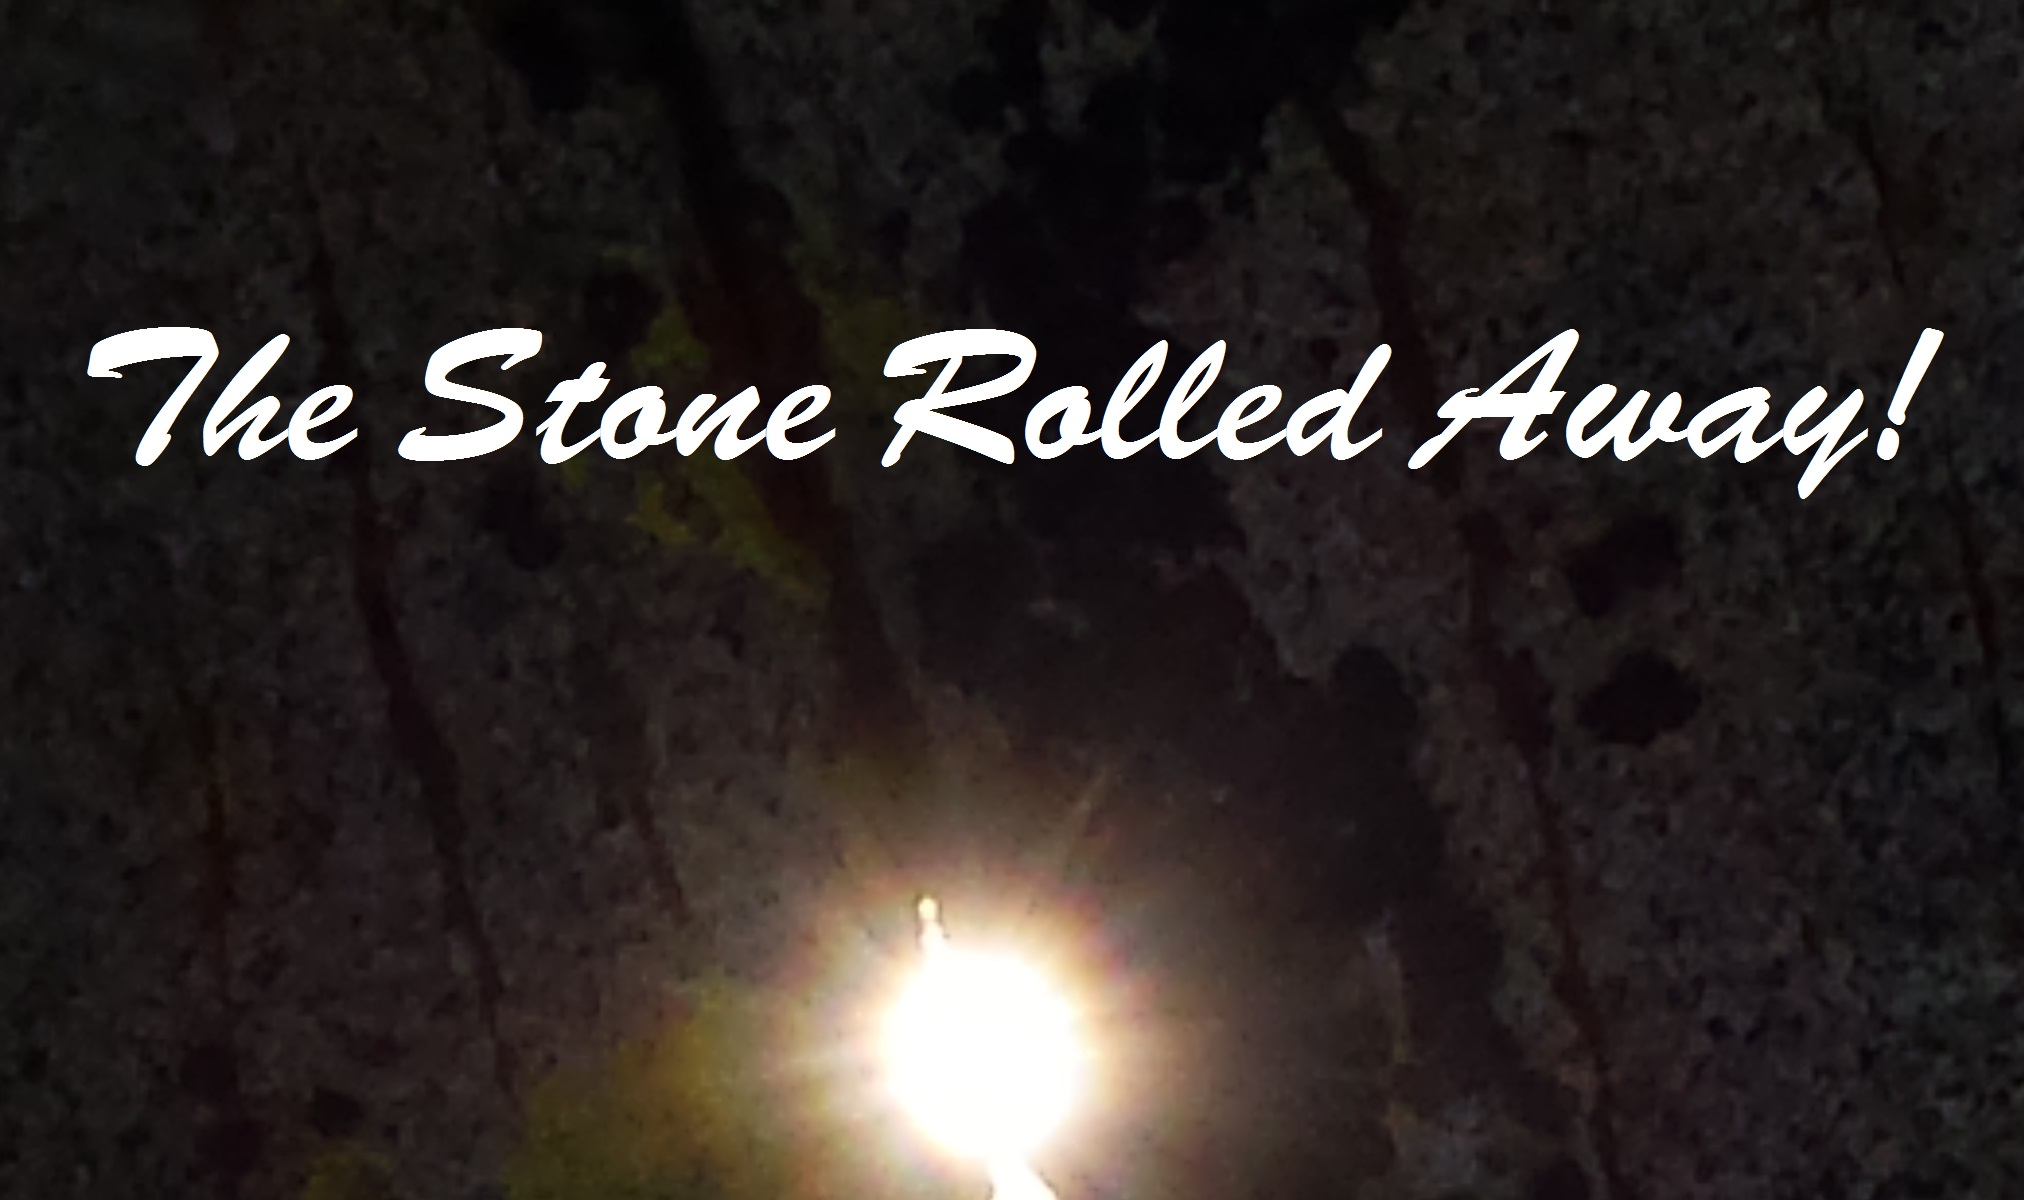 The Stone Rolled Away!  JESUS is Alive!